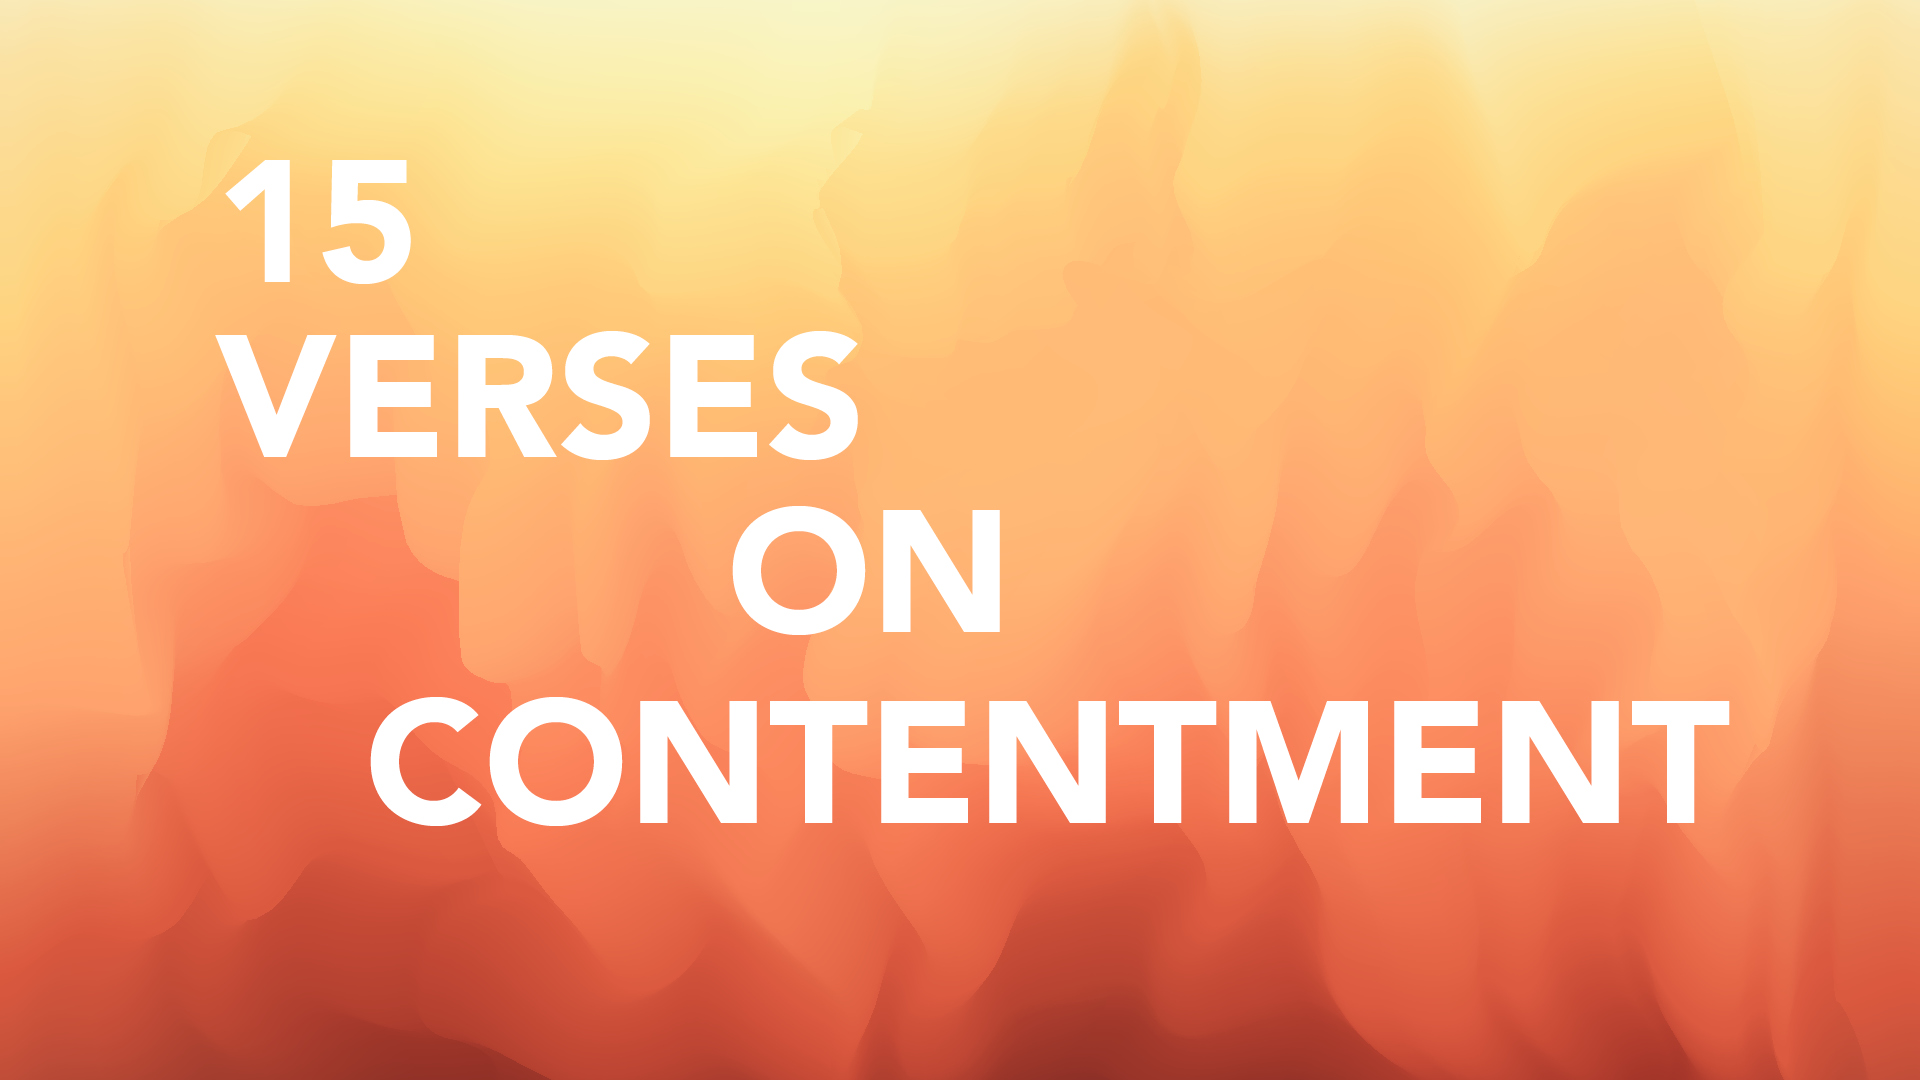 Lacking Contentment: 15 Verses to Help Hero Image